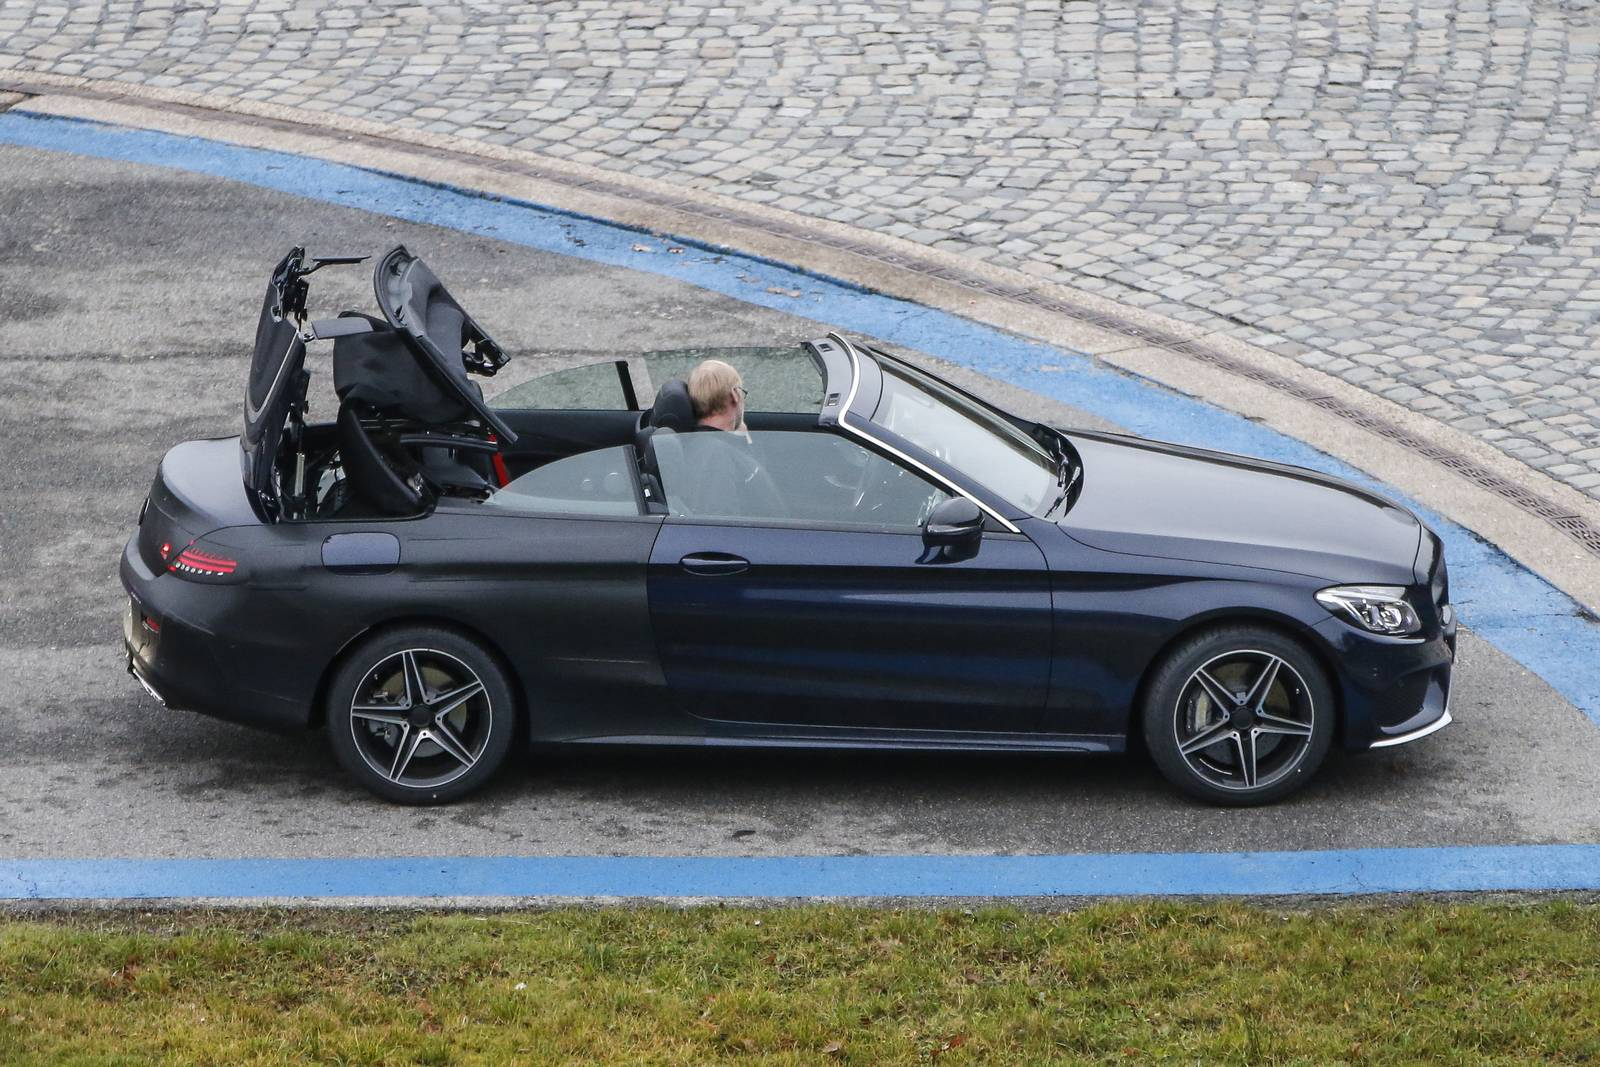 2017 mercedes benz c class cabriolet spy shots with top down gtspirit. Black Bedroom Furniture Sets. Home Design Ideas